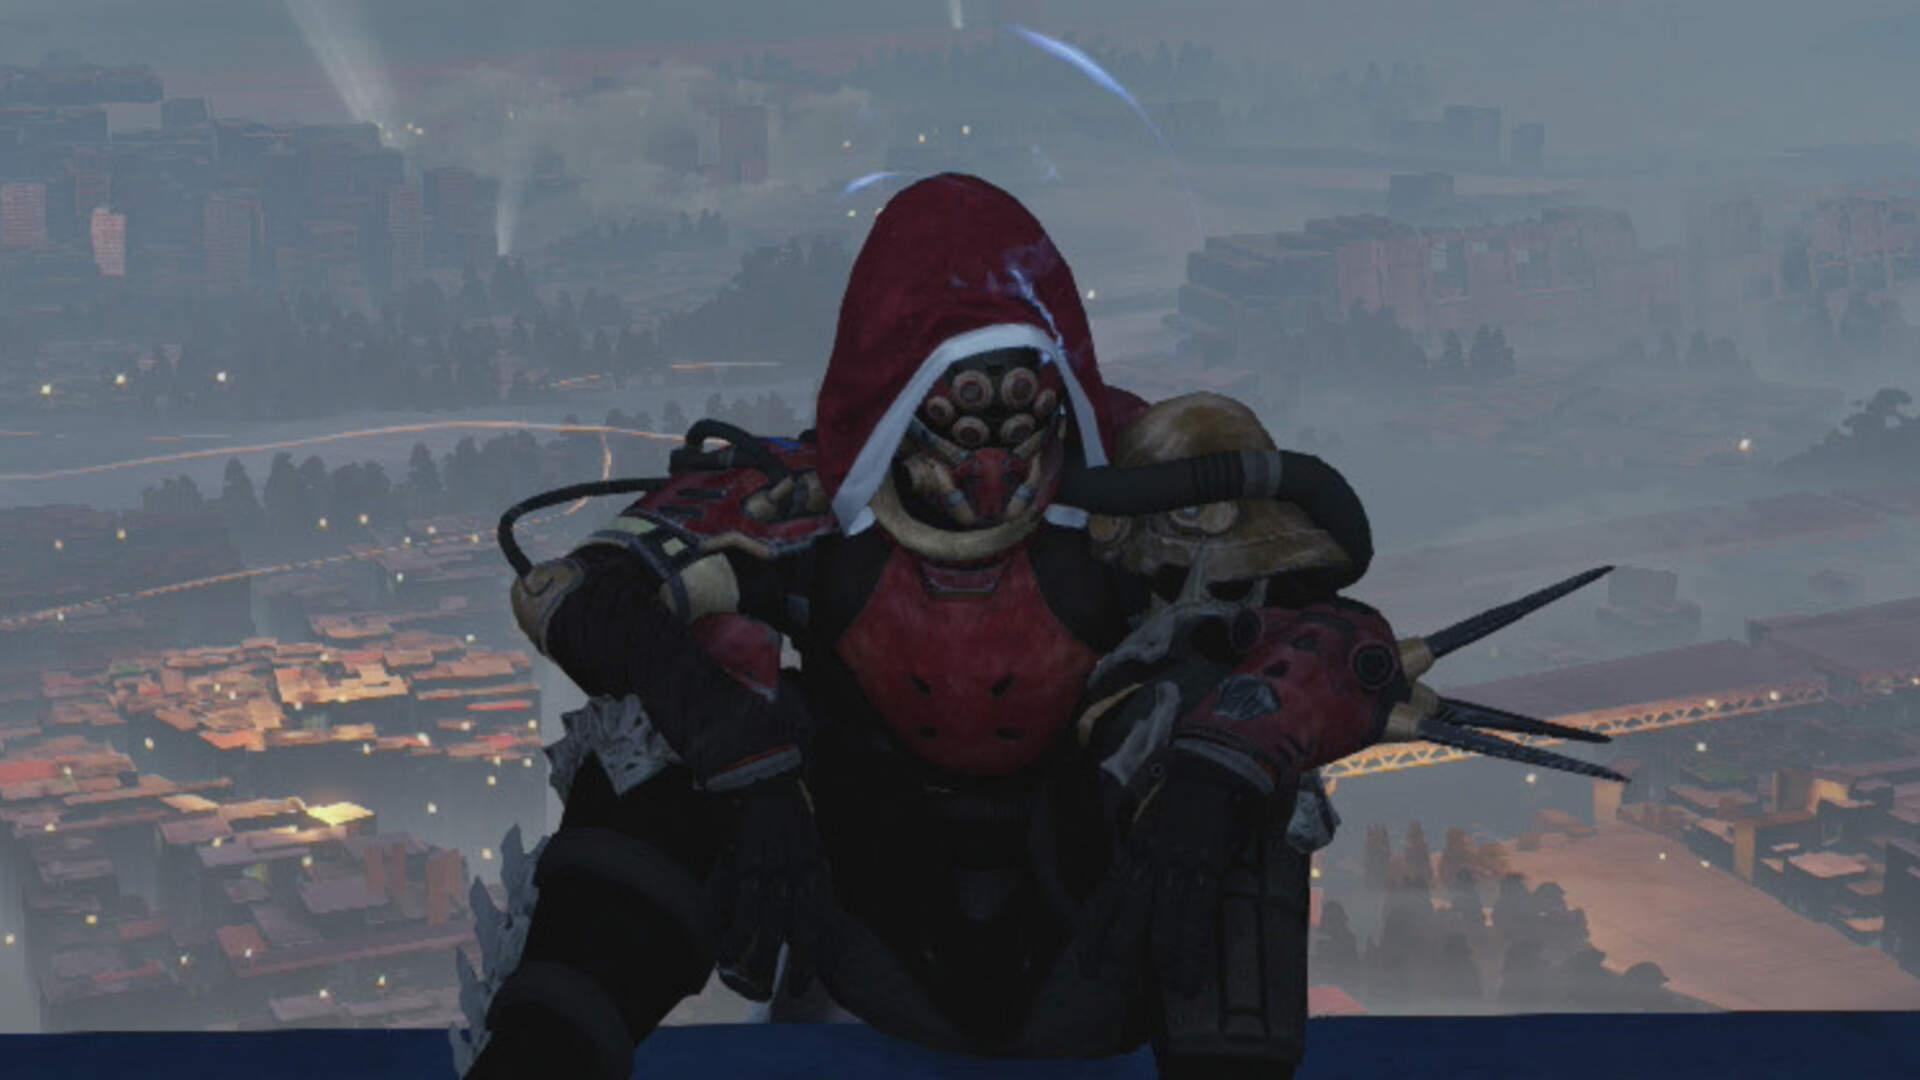 Destiny: The Taken King - Hunter Subclass Quests Guide